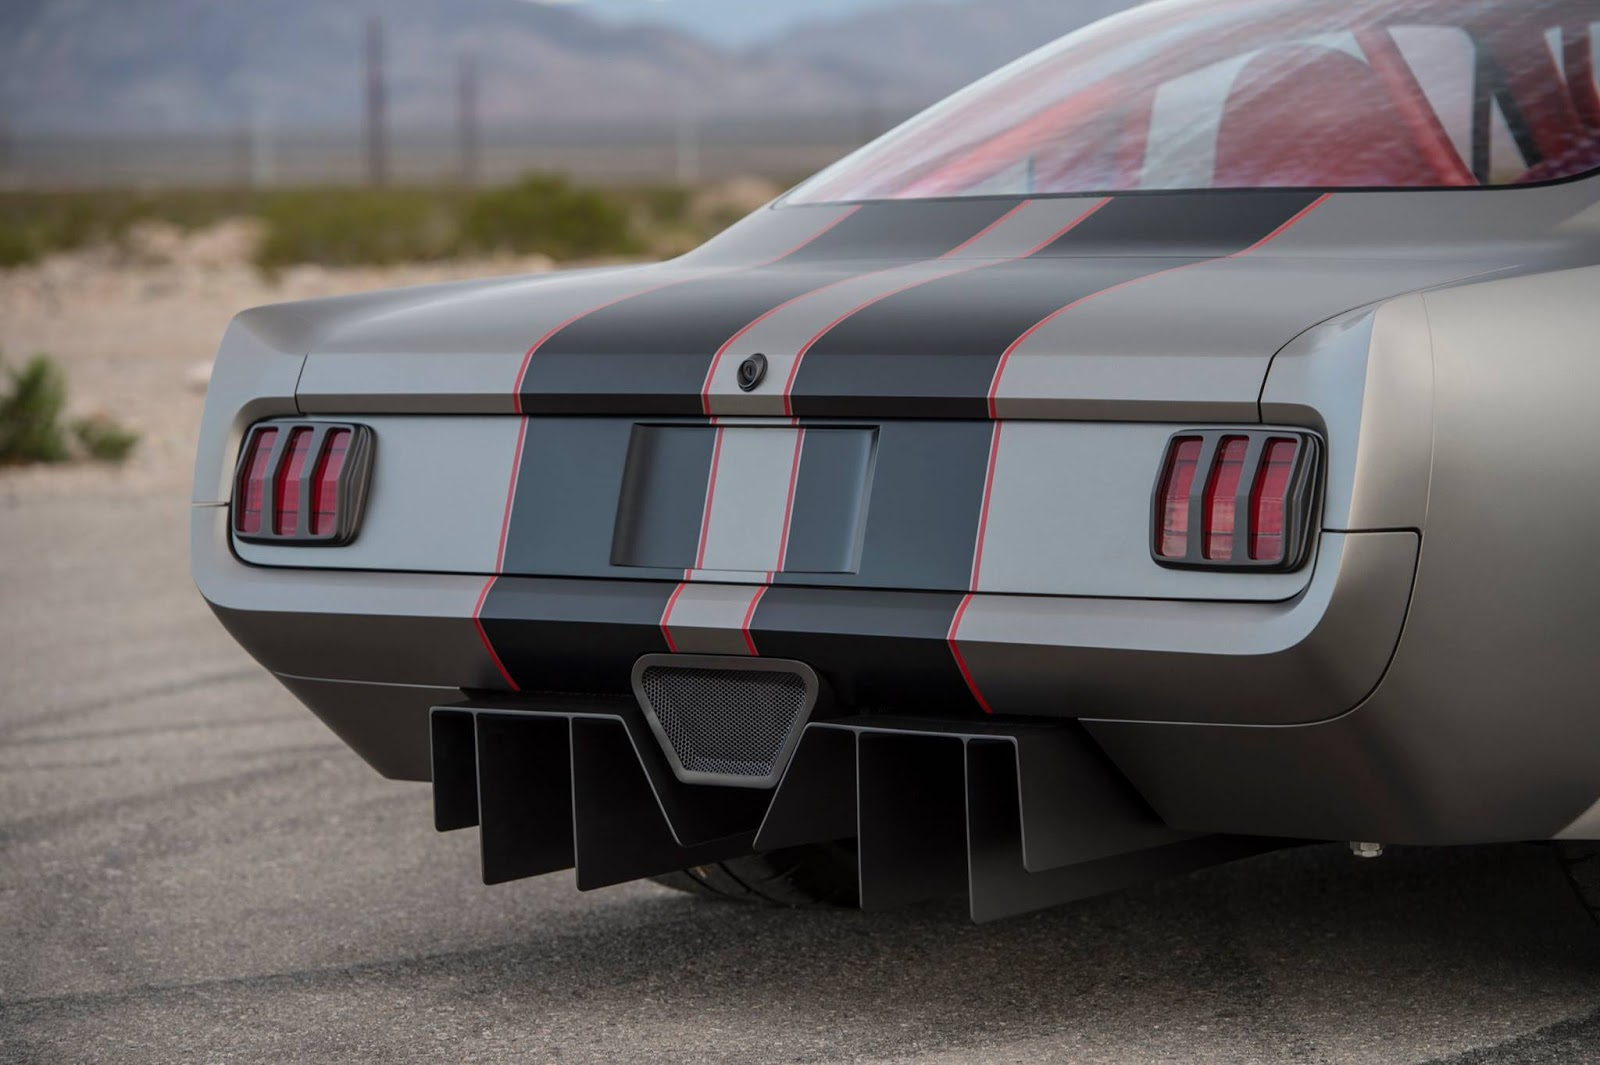 Twin-Turbo Mustang by Timeless Kustoms (13)